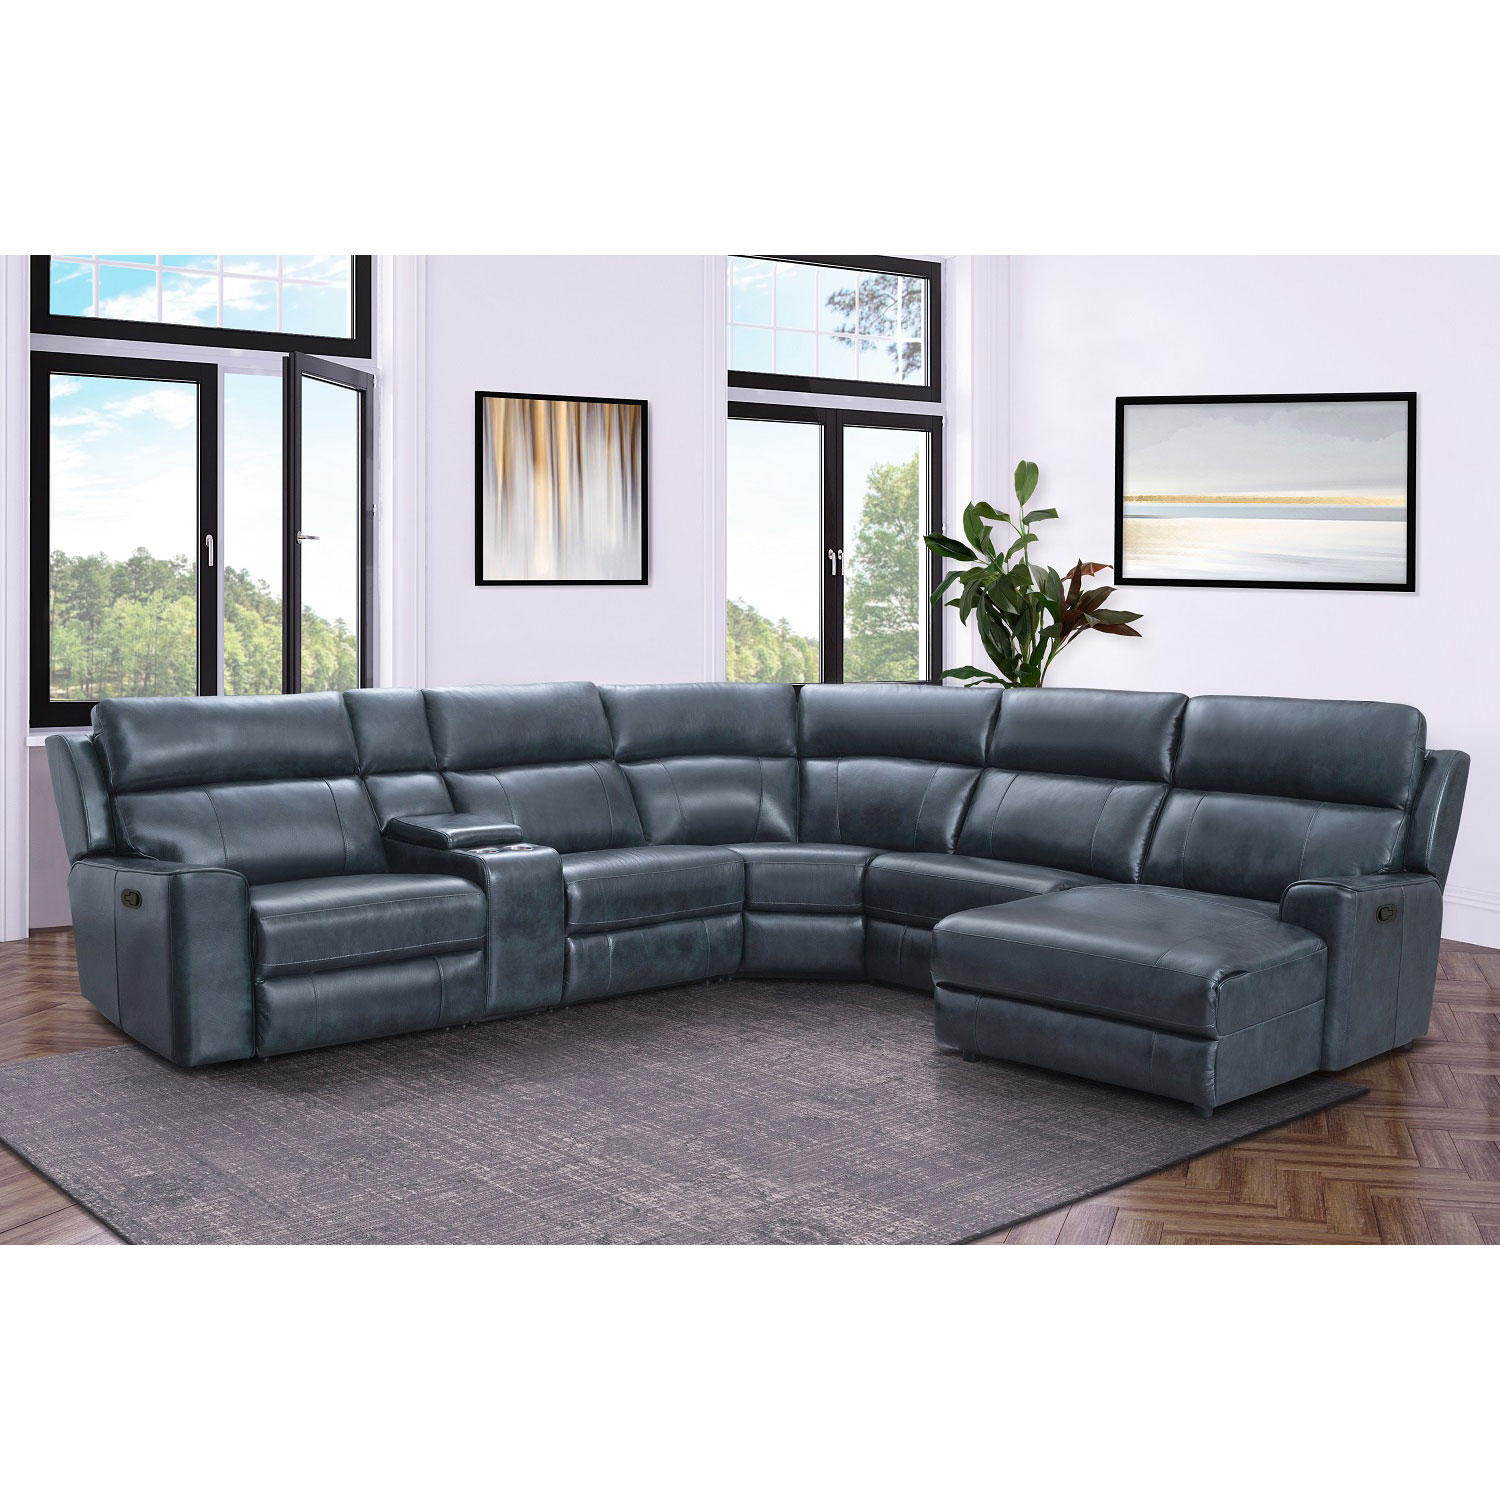 Conway Top-Grain Leather 6-Piece Reclining Sectional with Chaise